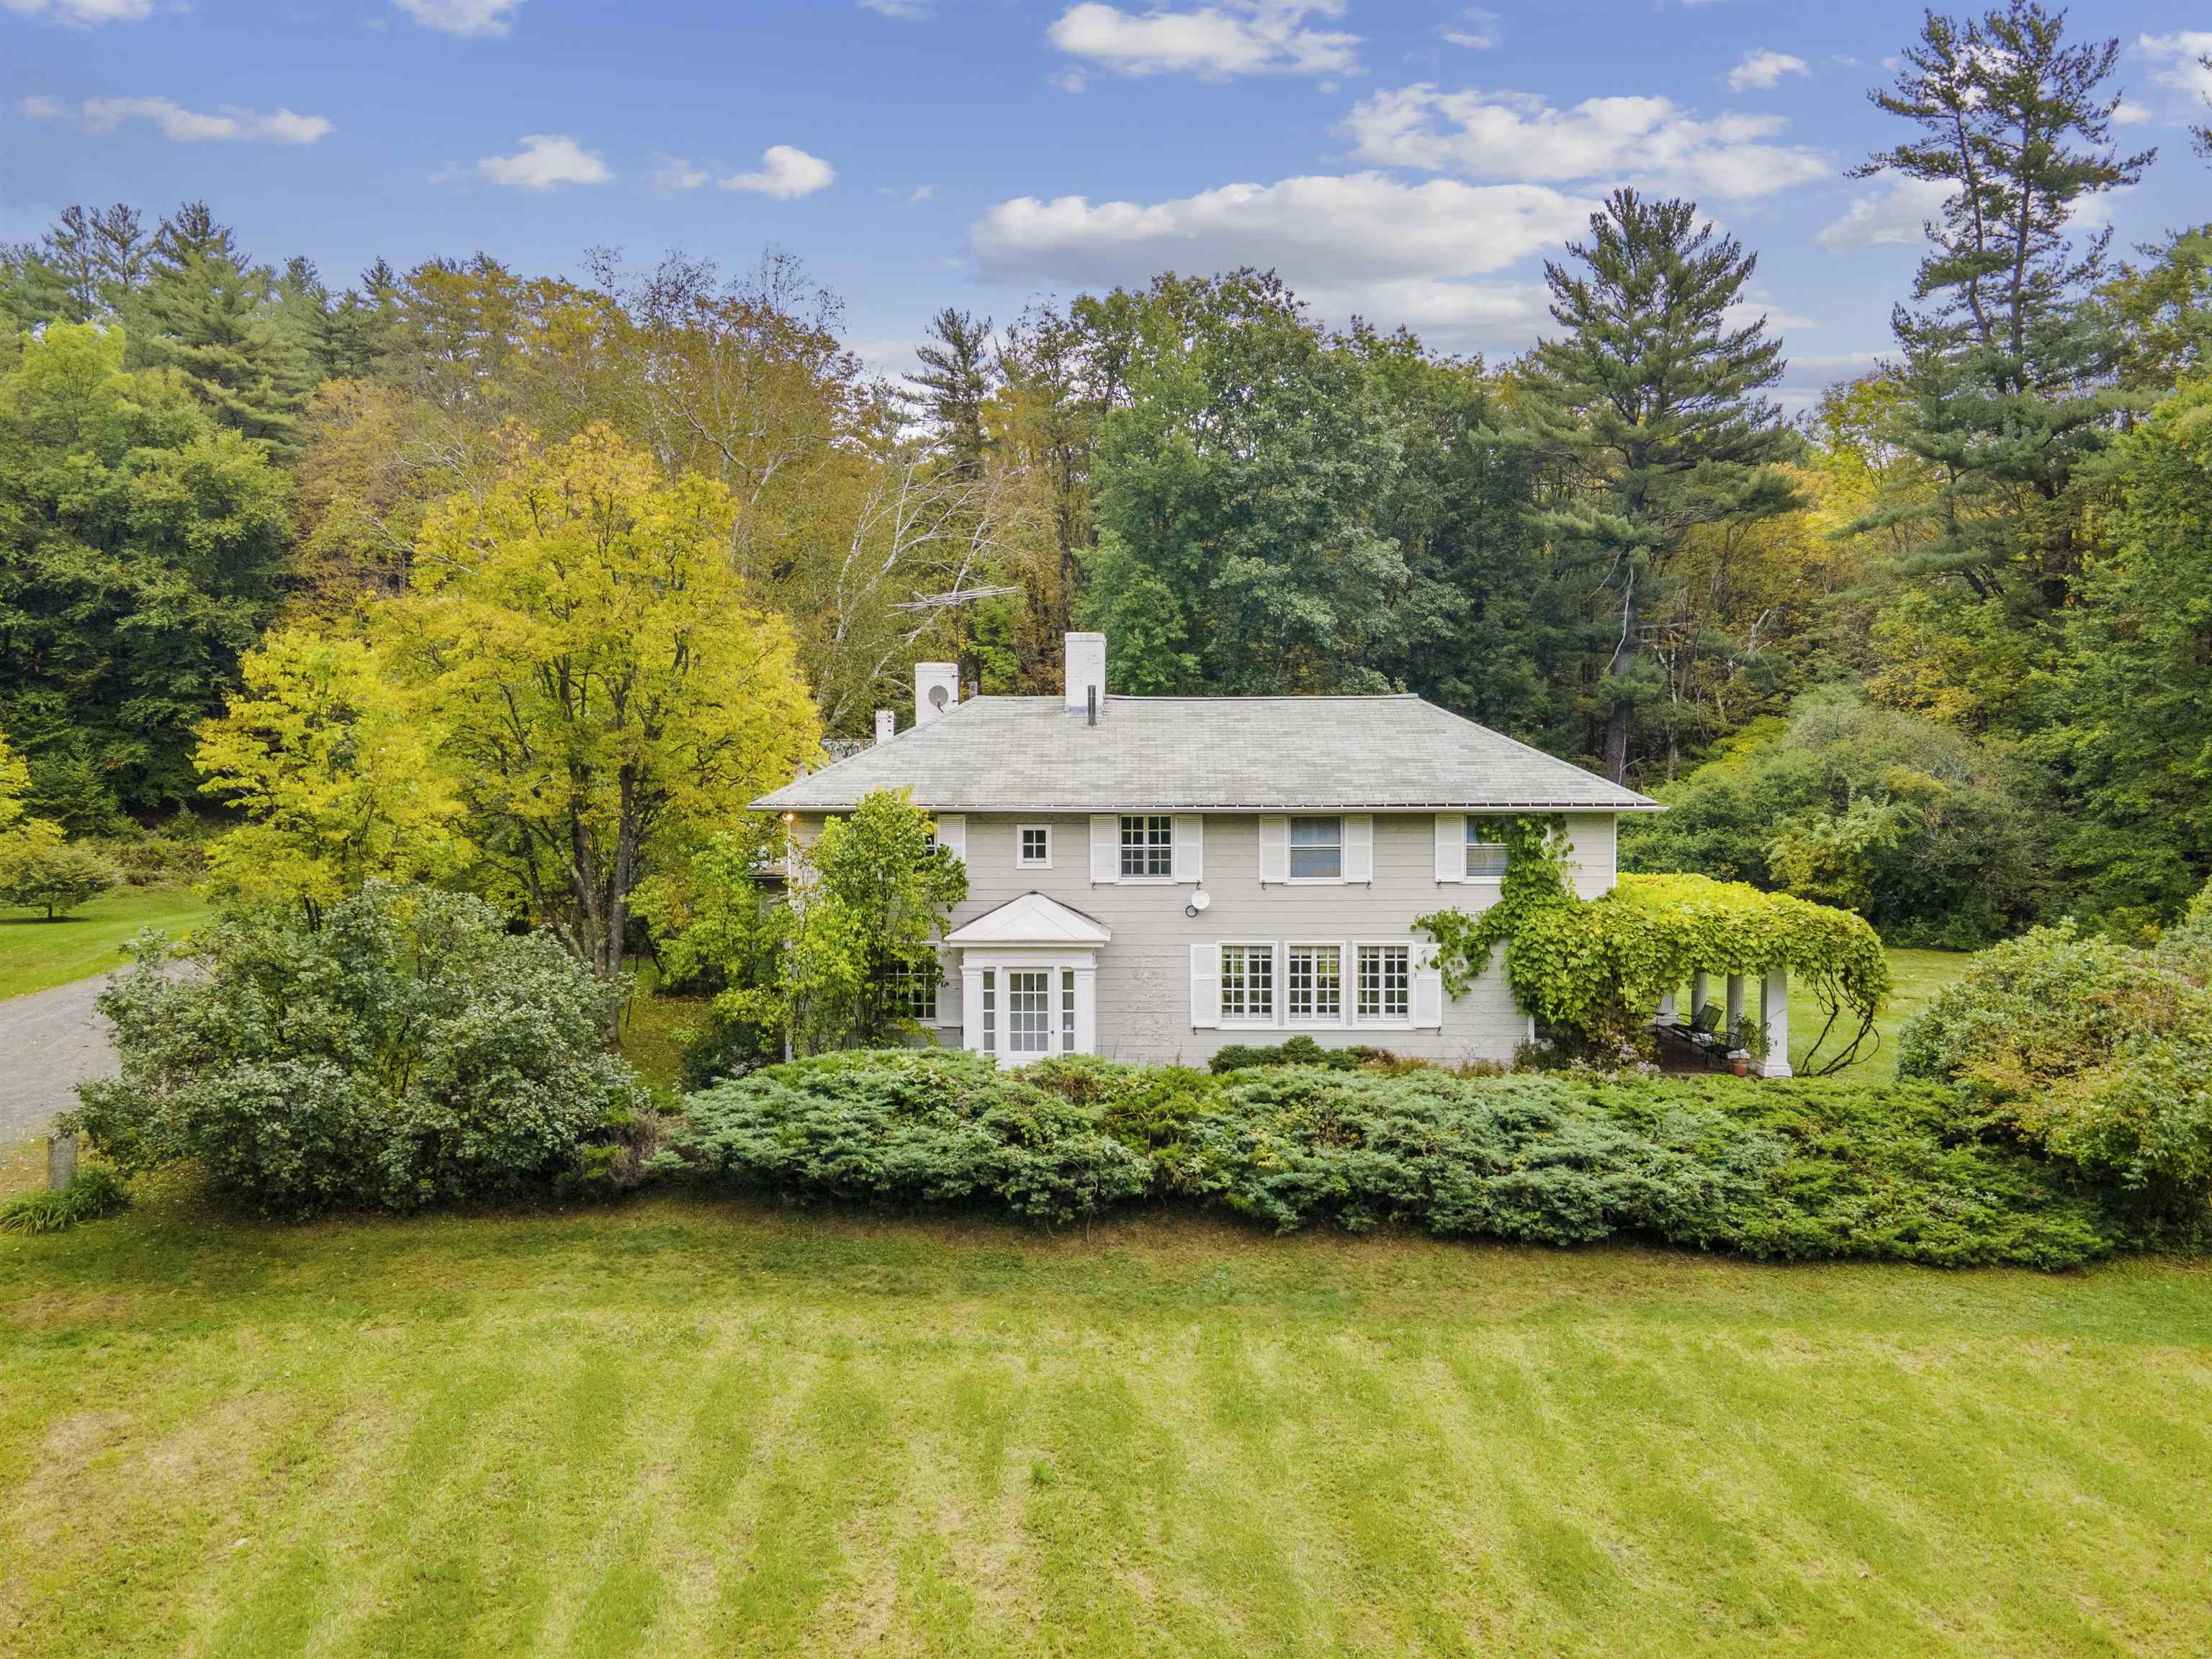 Cornish NH 03745-Home for sale $List Price is $1,500,000